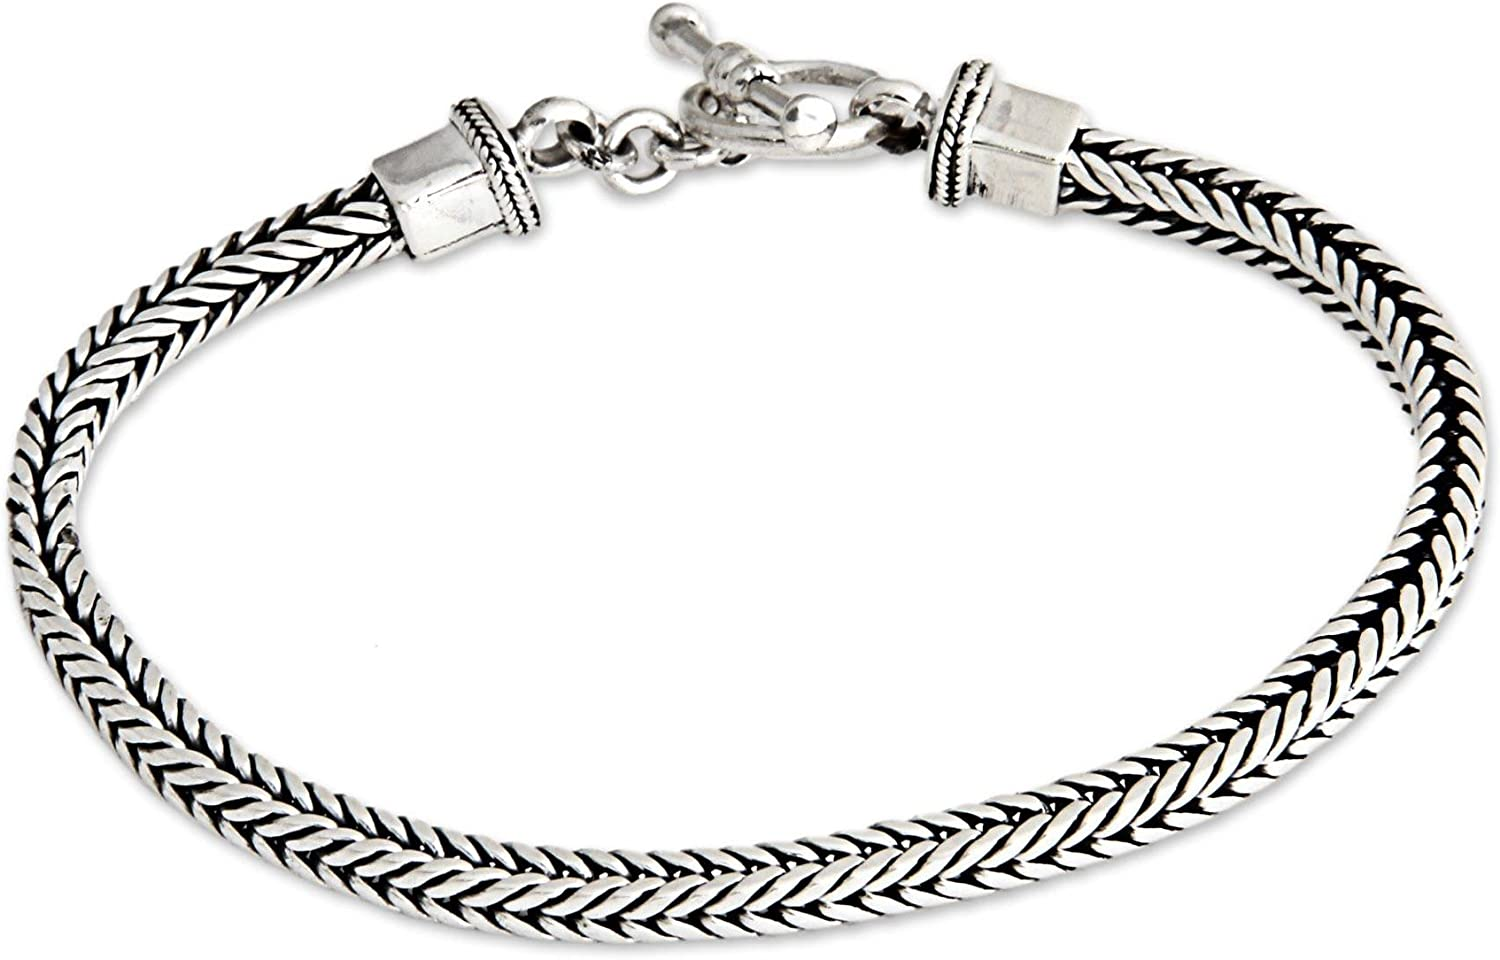 Direct sale of manufacturer Superior NOVICA .925 Sterling Silver Braided 'Balin 8.75